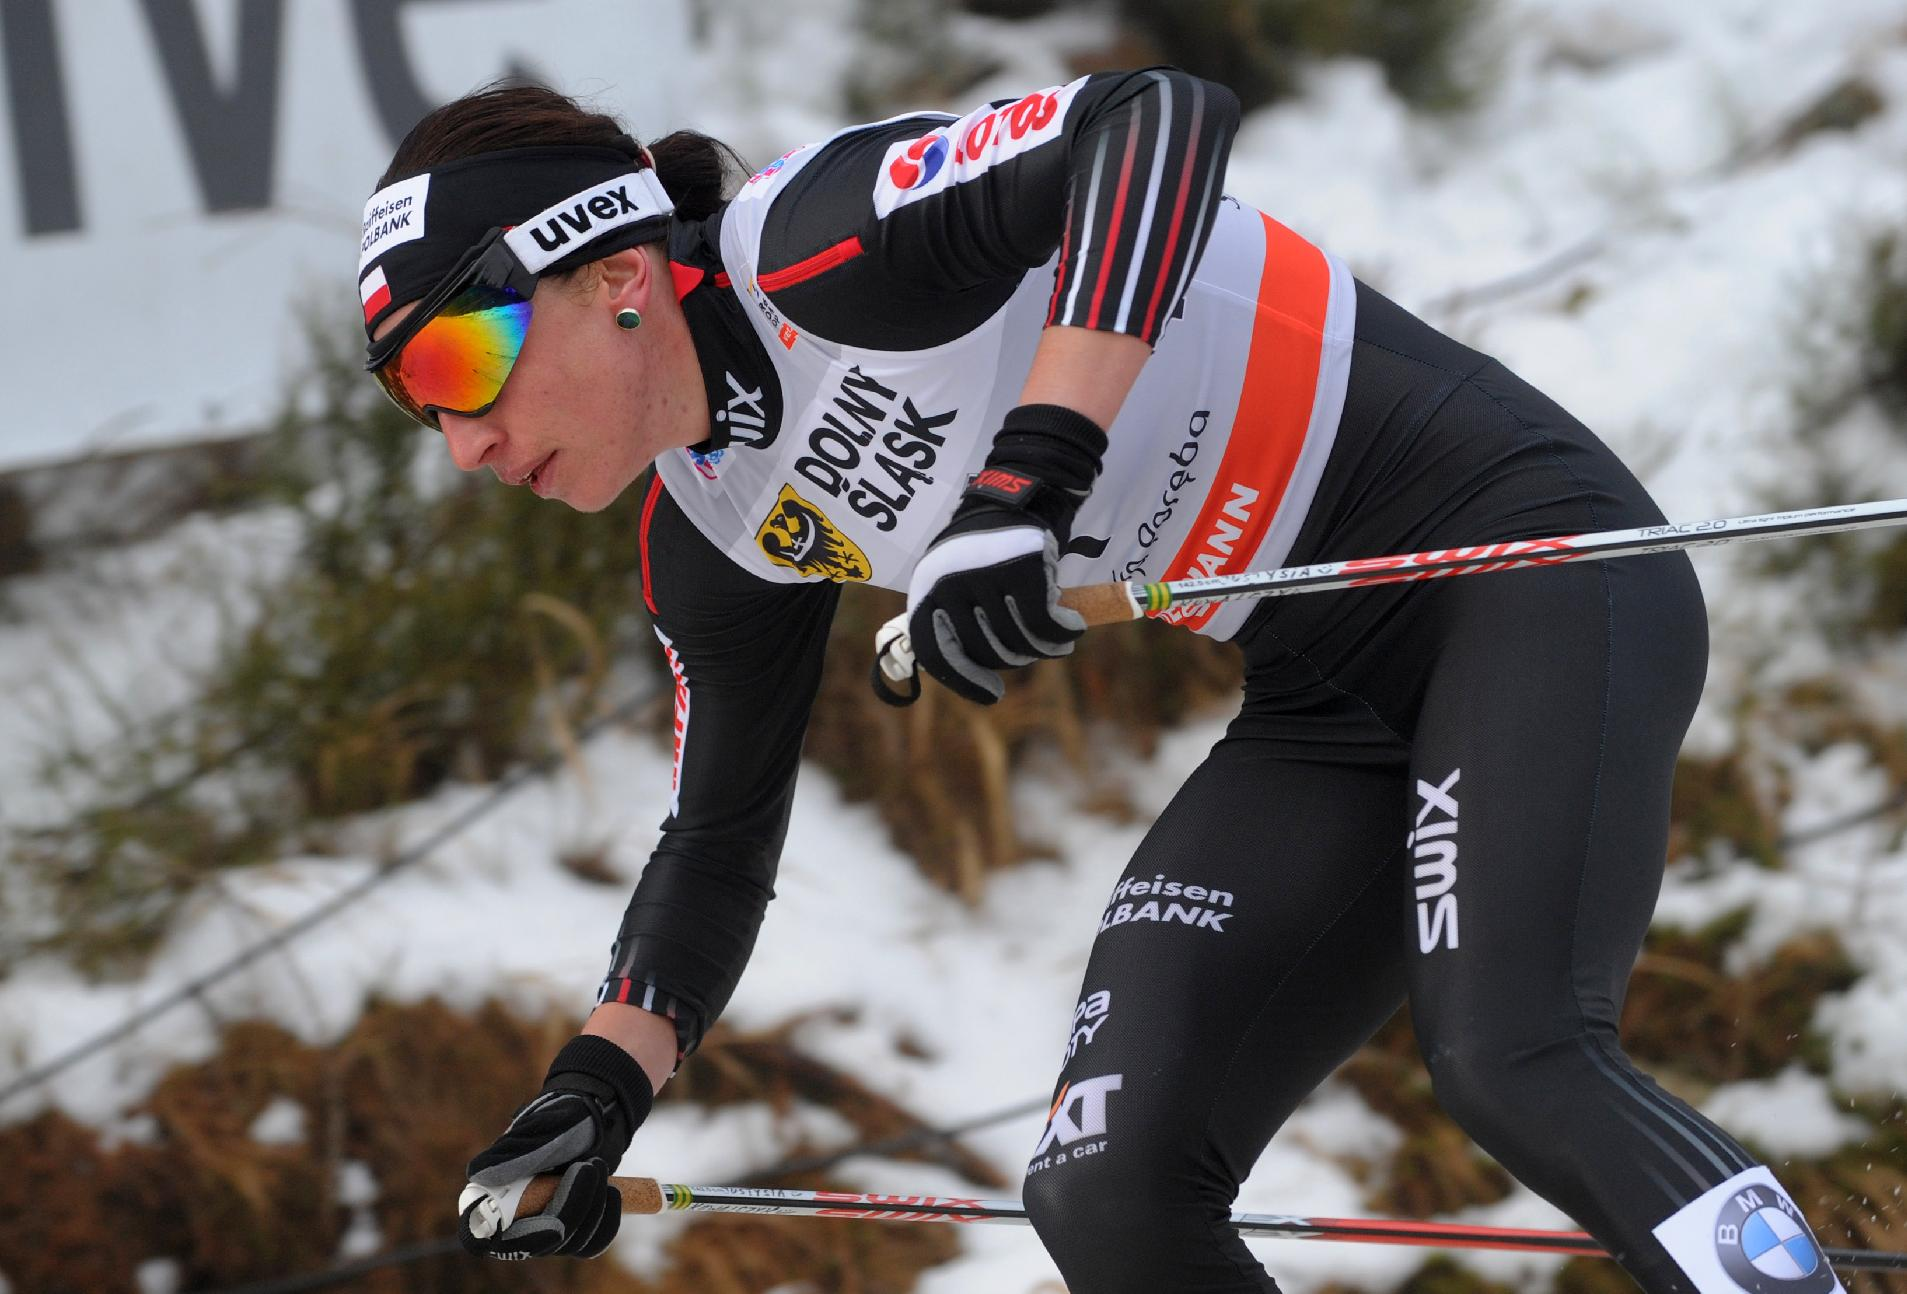 Poland's Justyna Kowalczyk competes during the women's Cross Country skiing 10km Mass Start Classic World Cup event in Szklarska Poreba, Poland, Sunday, Jan. 19, 2014